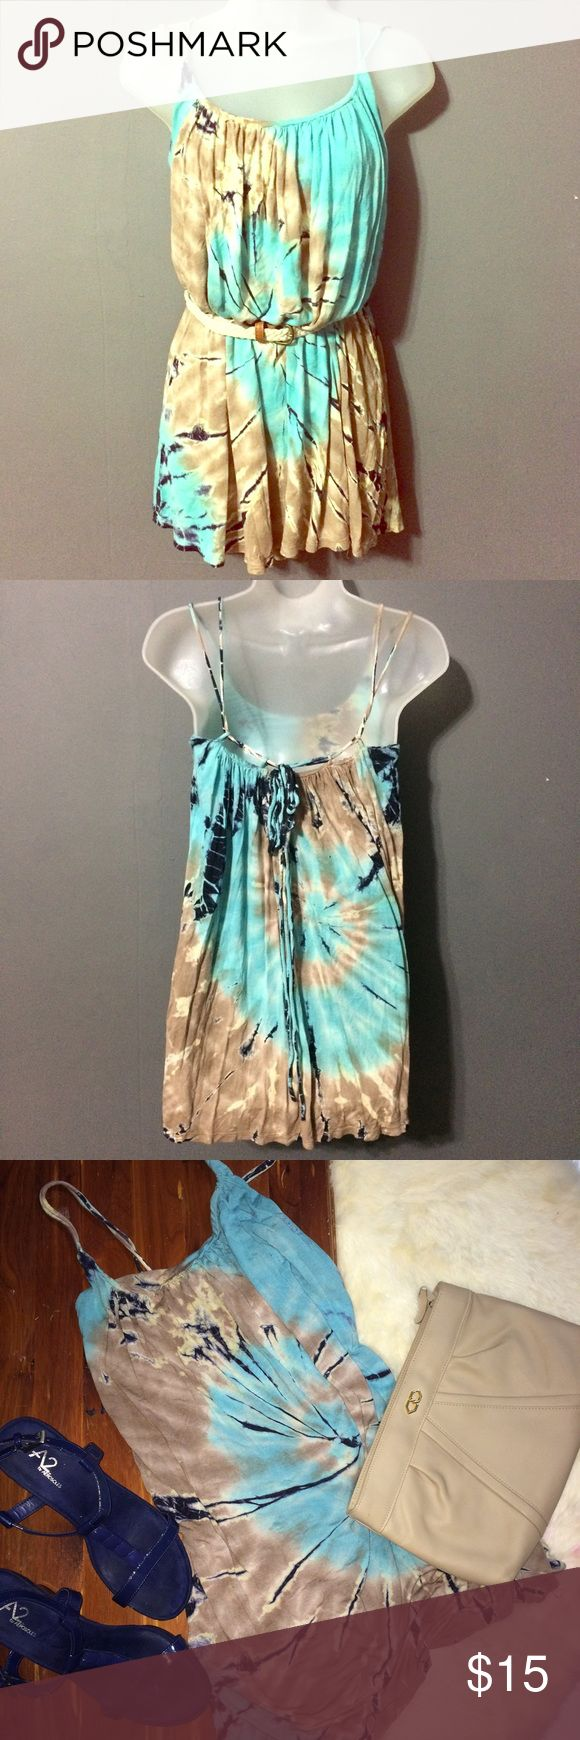 Tie dye mini dress Size small tie dye mini dress with spaghetti straps and ties in the back. Tan and baby blue in color. Great movement this dress is perfect for days at the beach, backyard bbqs, or pool nights. No trades ️️ or Ⓜ️ercari. Ask me about bundles  offers always considered when submitted via the offer button  Dresses Mini